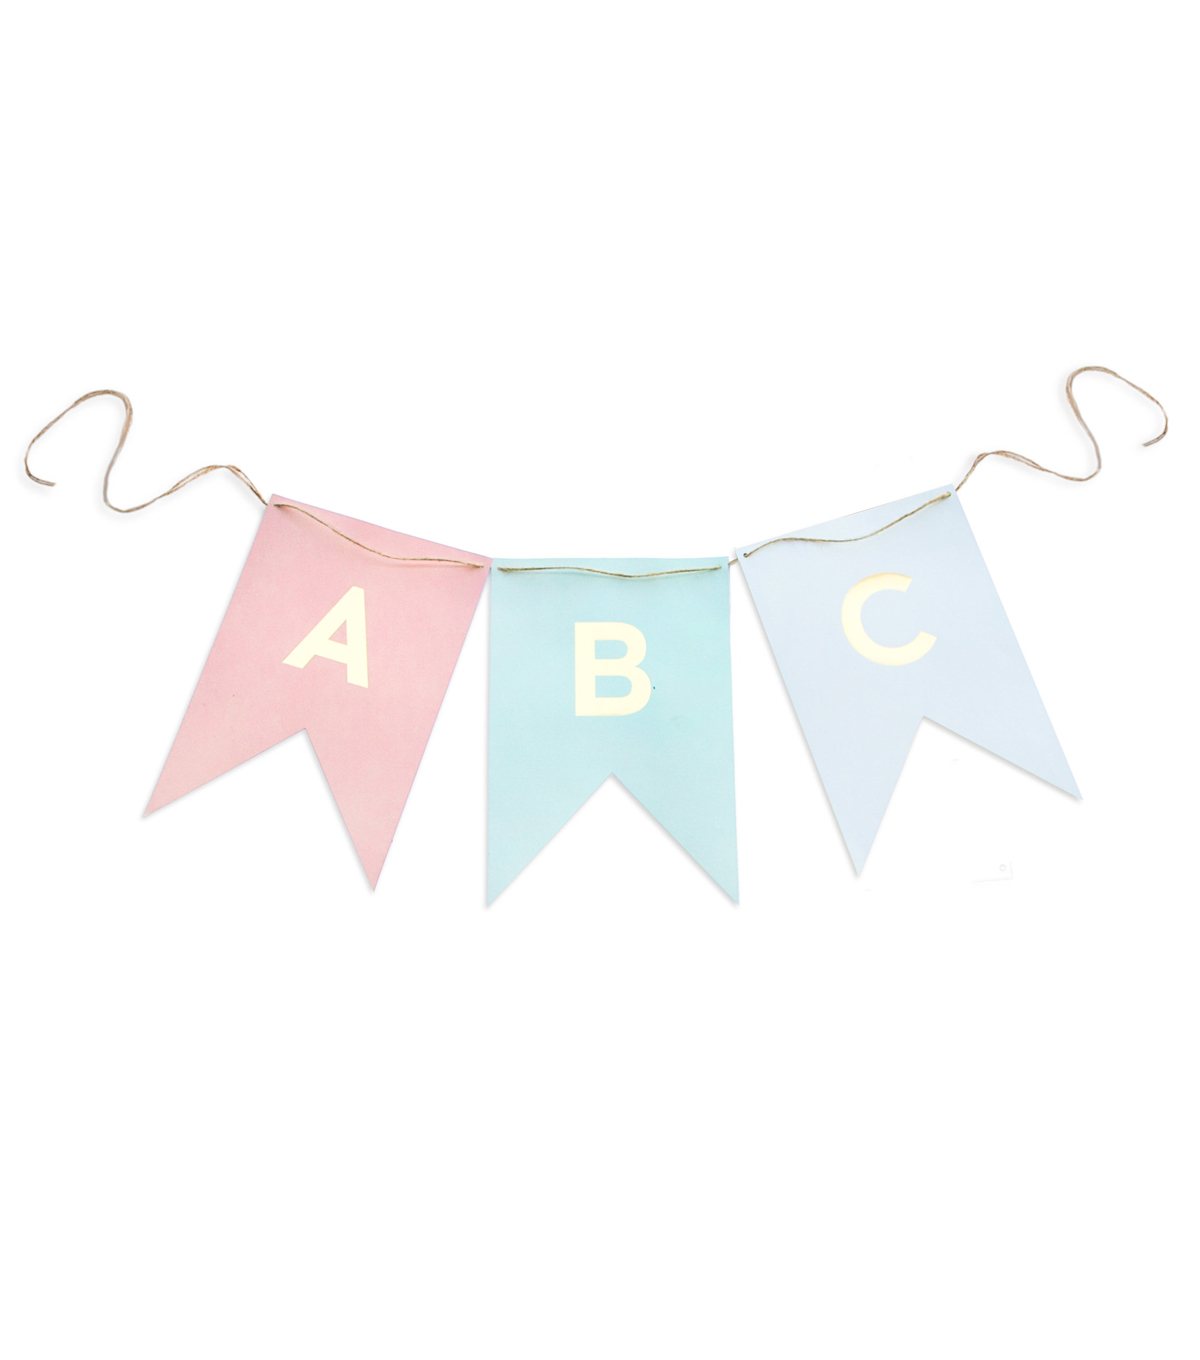 My Minds Eye Paper Goods Trend Letter Banner